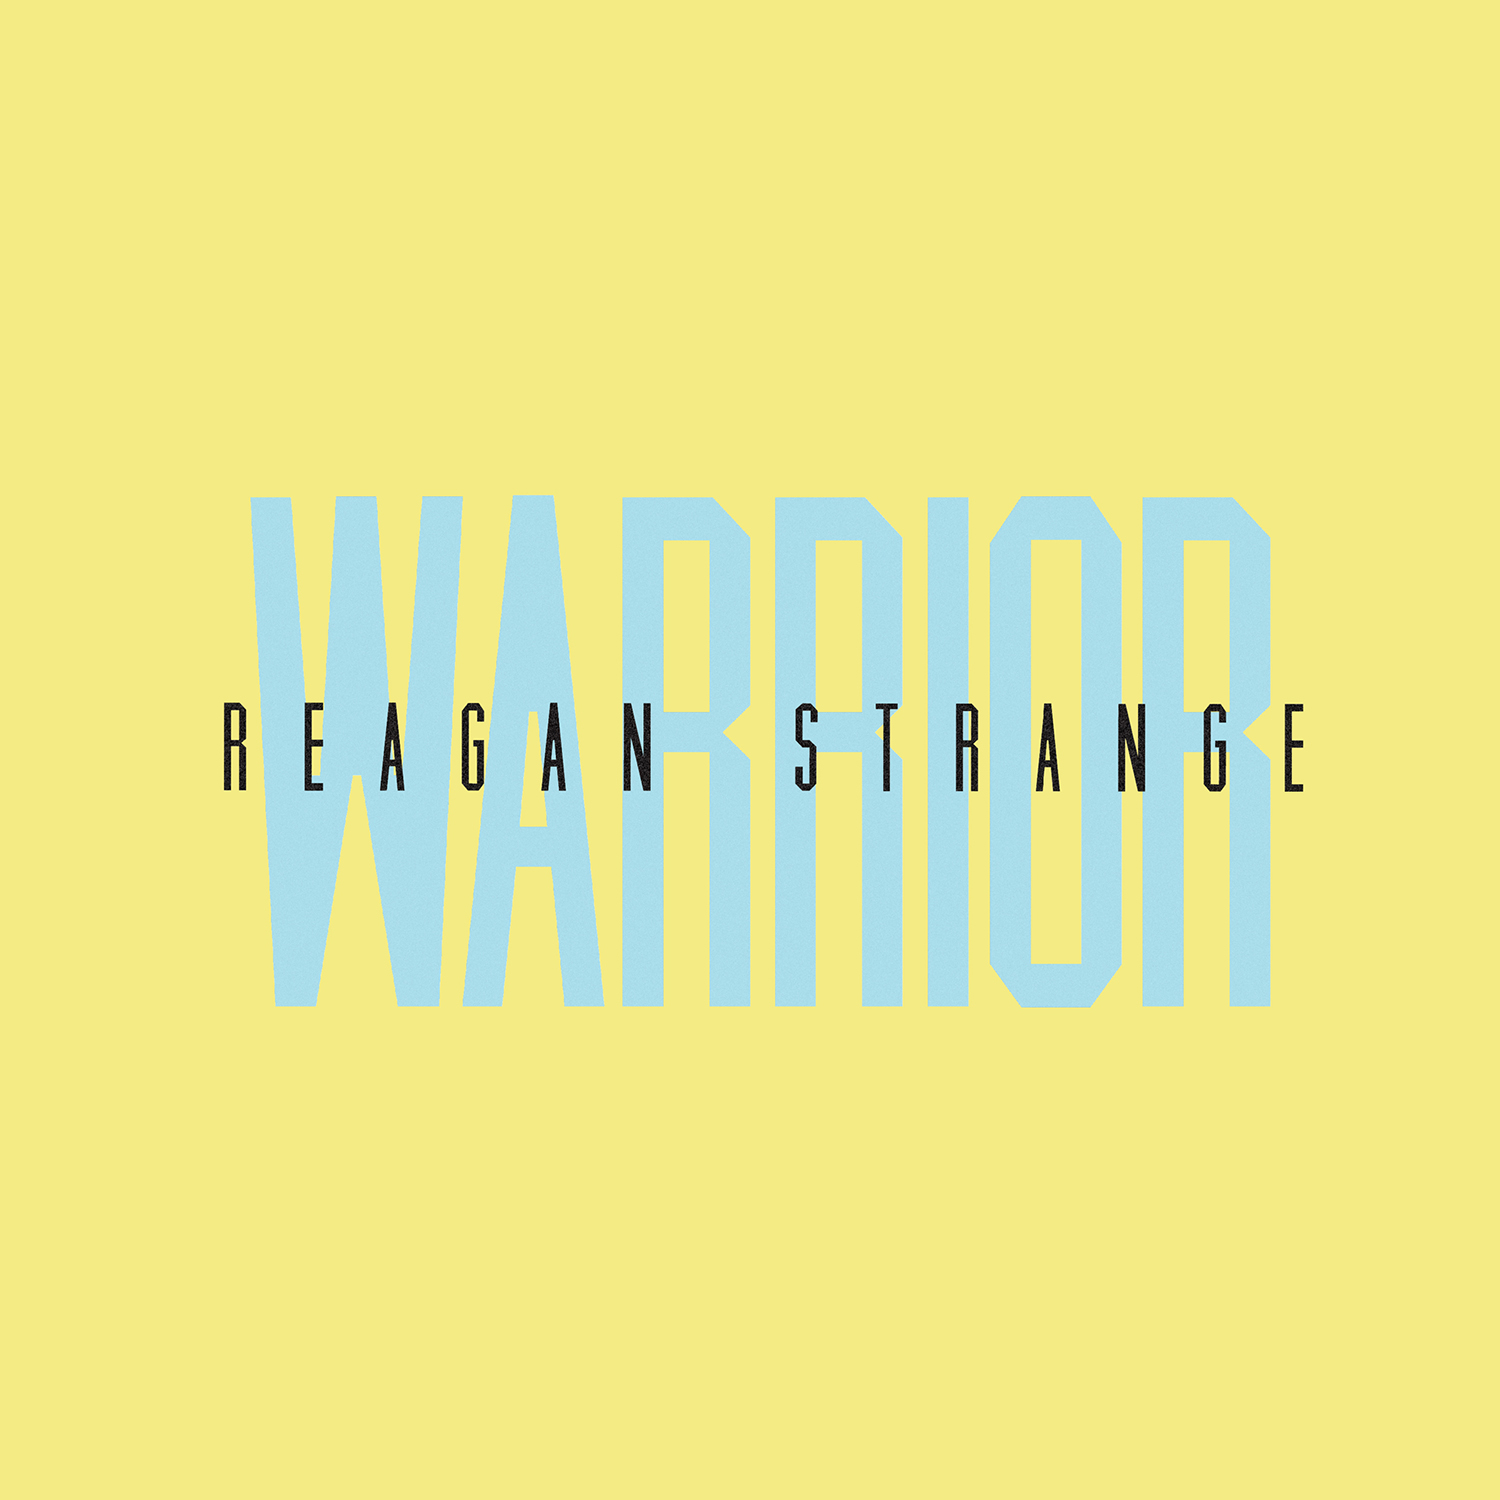 Reagan-Warrior-SMARTURL.jpg